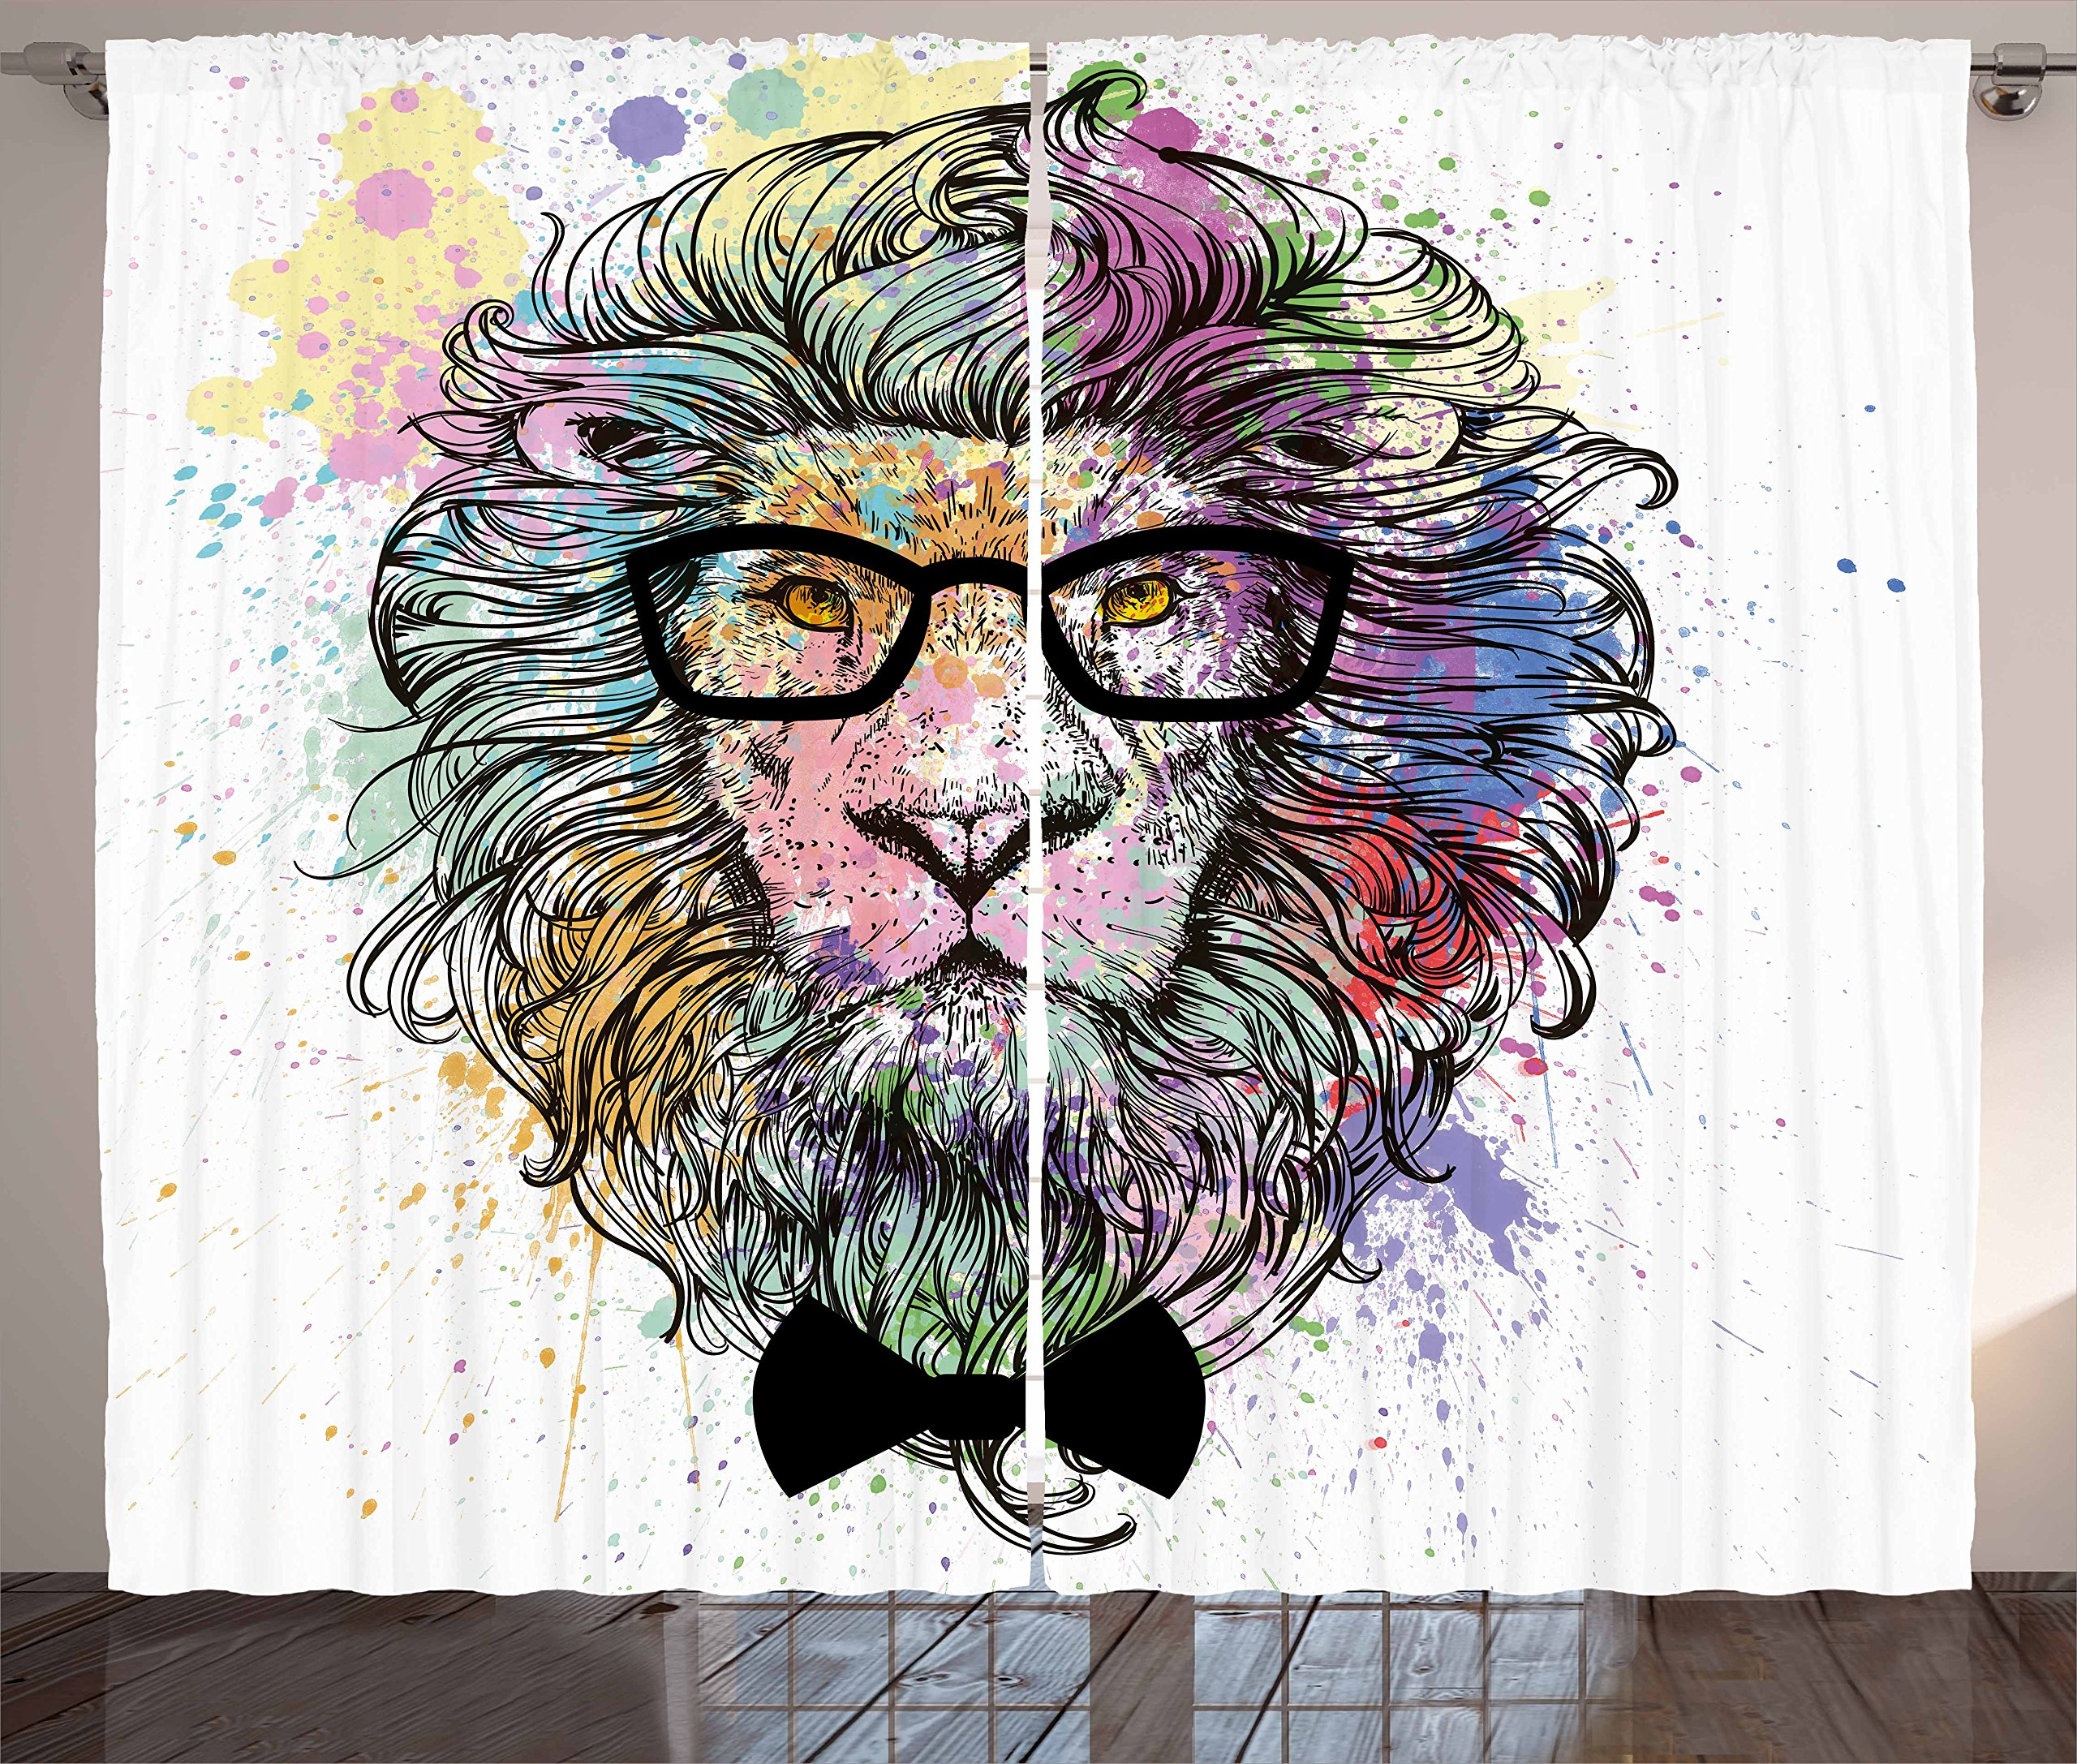 Ambesonne Fashion House Decor Curtains by, Hipster Lion with Glasses and Bowtie King of Animals Splash Style Art, Living Room Bedroom Window Drapes 2 Panel Set, 108W X 84L Inches, Purple Black